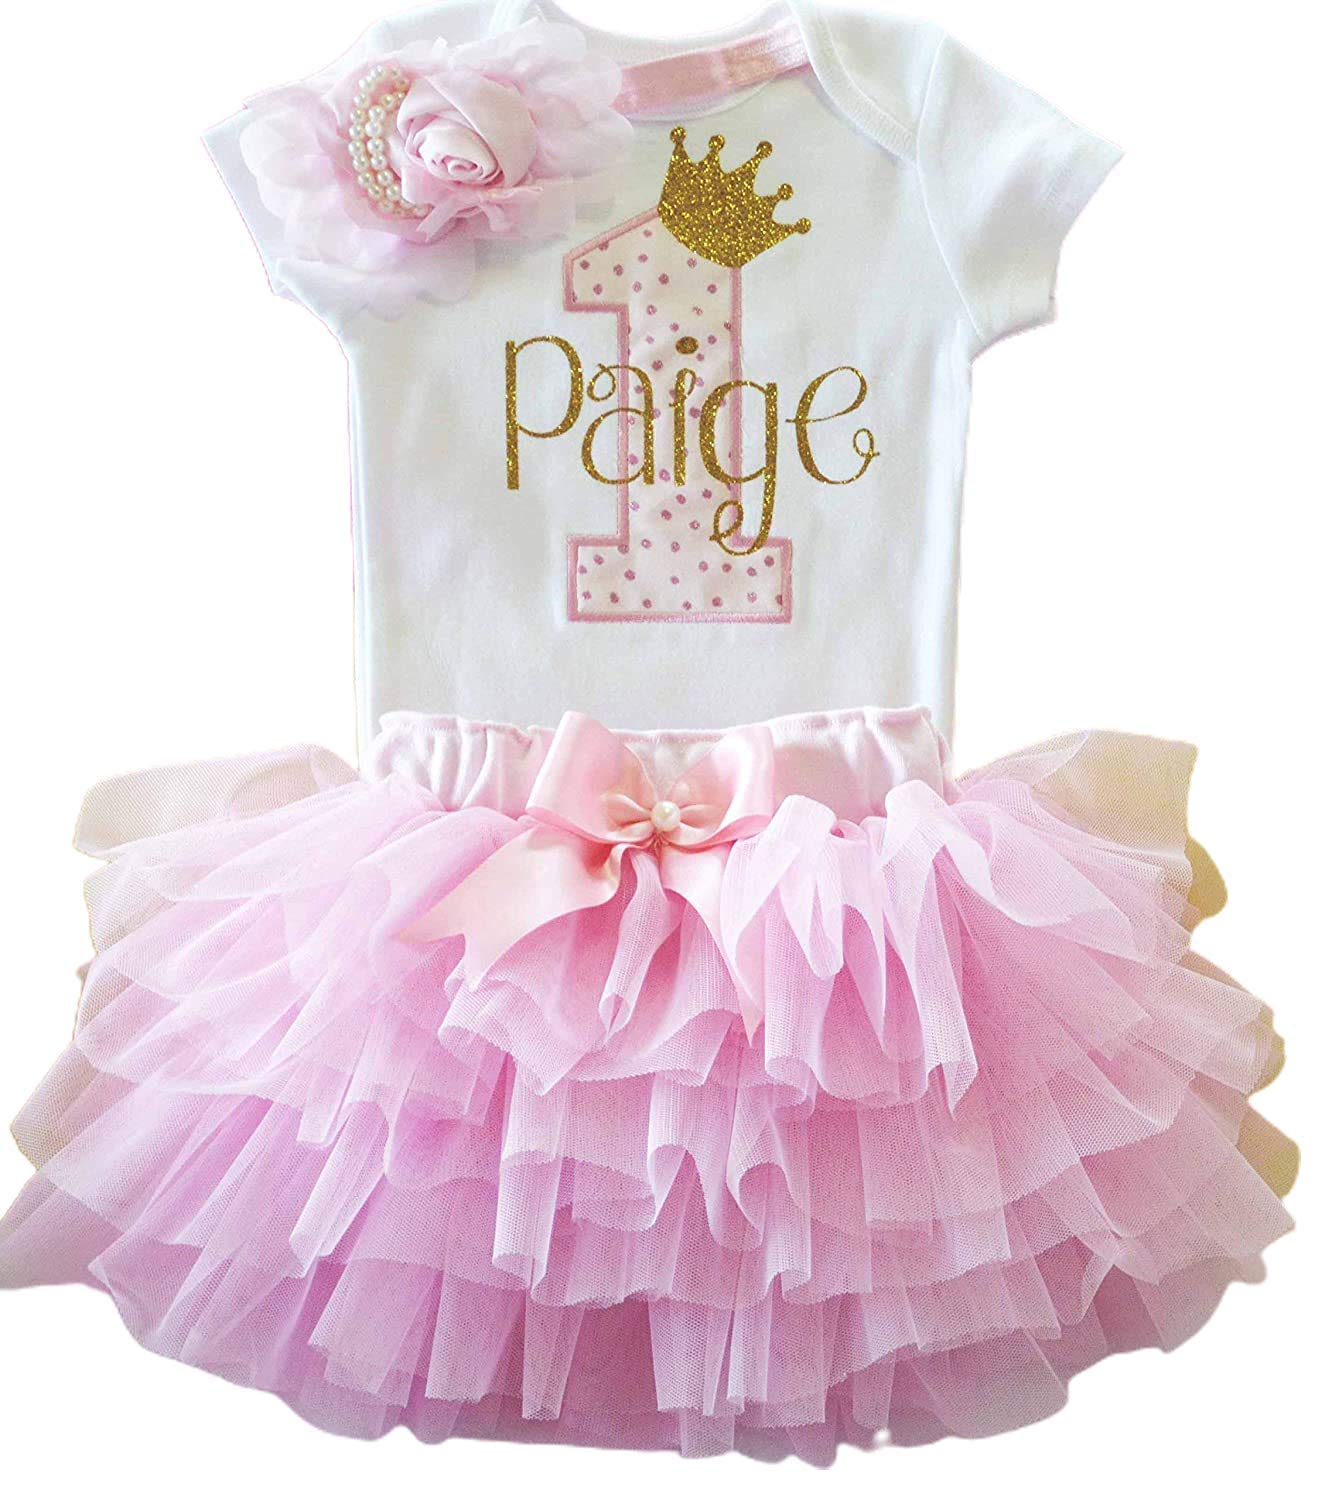 8st Gold Princess Personalized Bodysuit in Pink Tutu - Baby Cake Smash  Dress - Custom Gifts for 8 Year Old Toddler